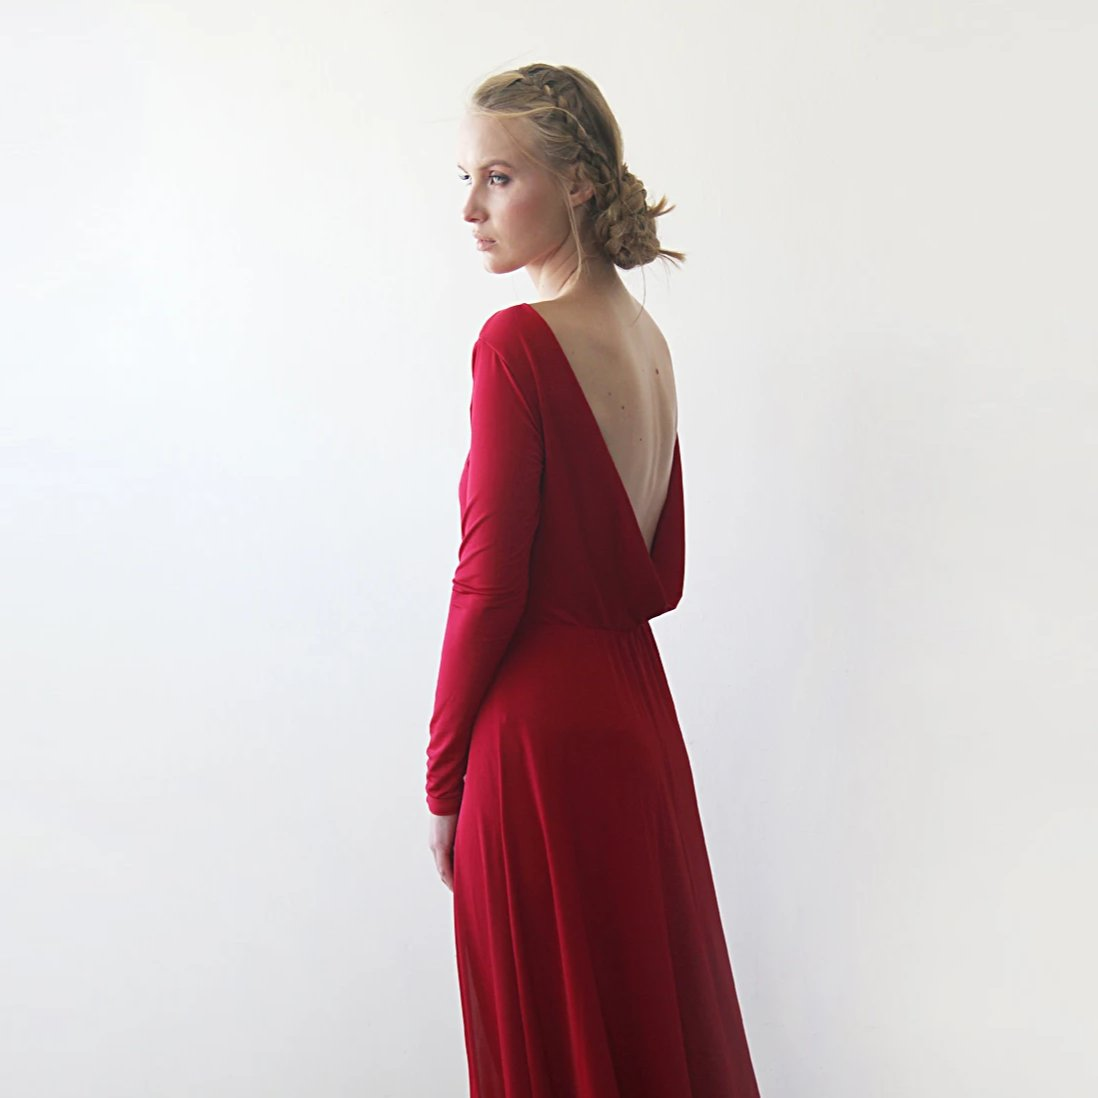 Red Formal Backless Long Sleeve Maxi Dress With Open-back SALE 1041